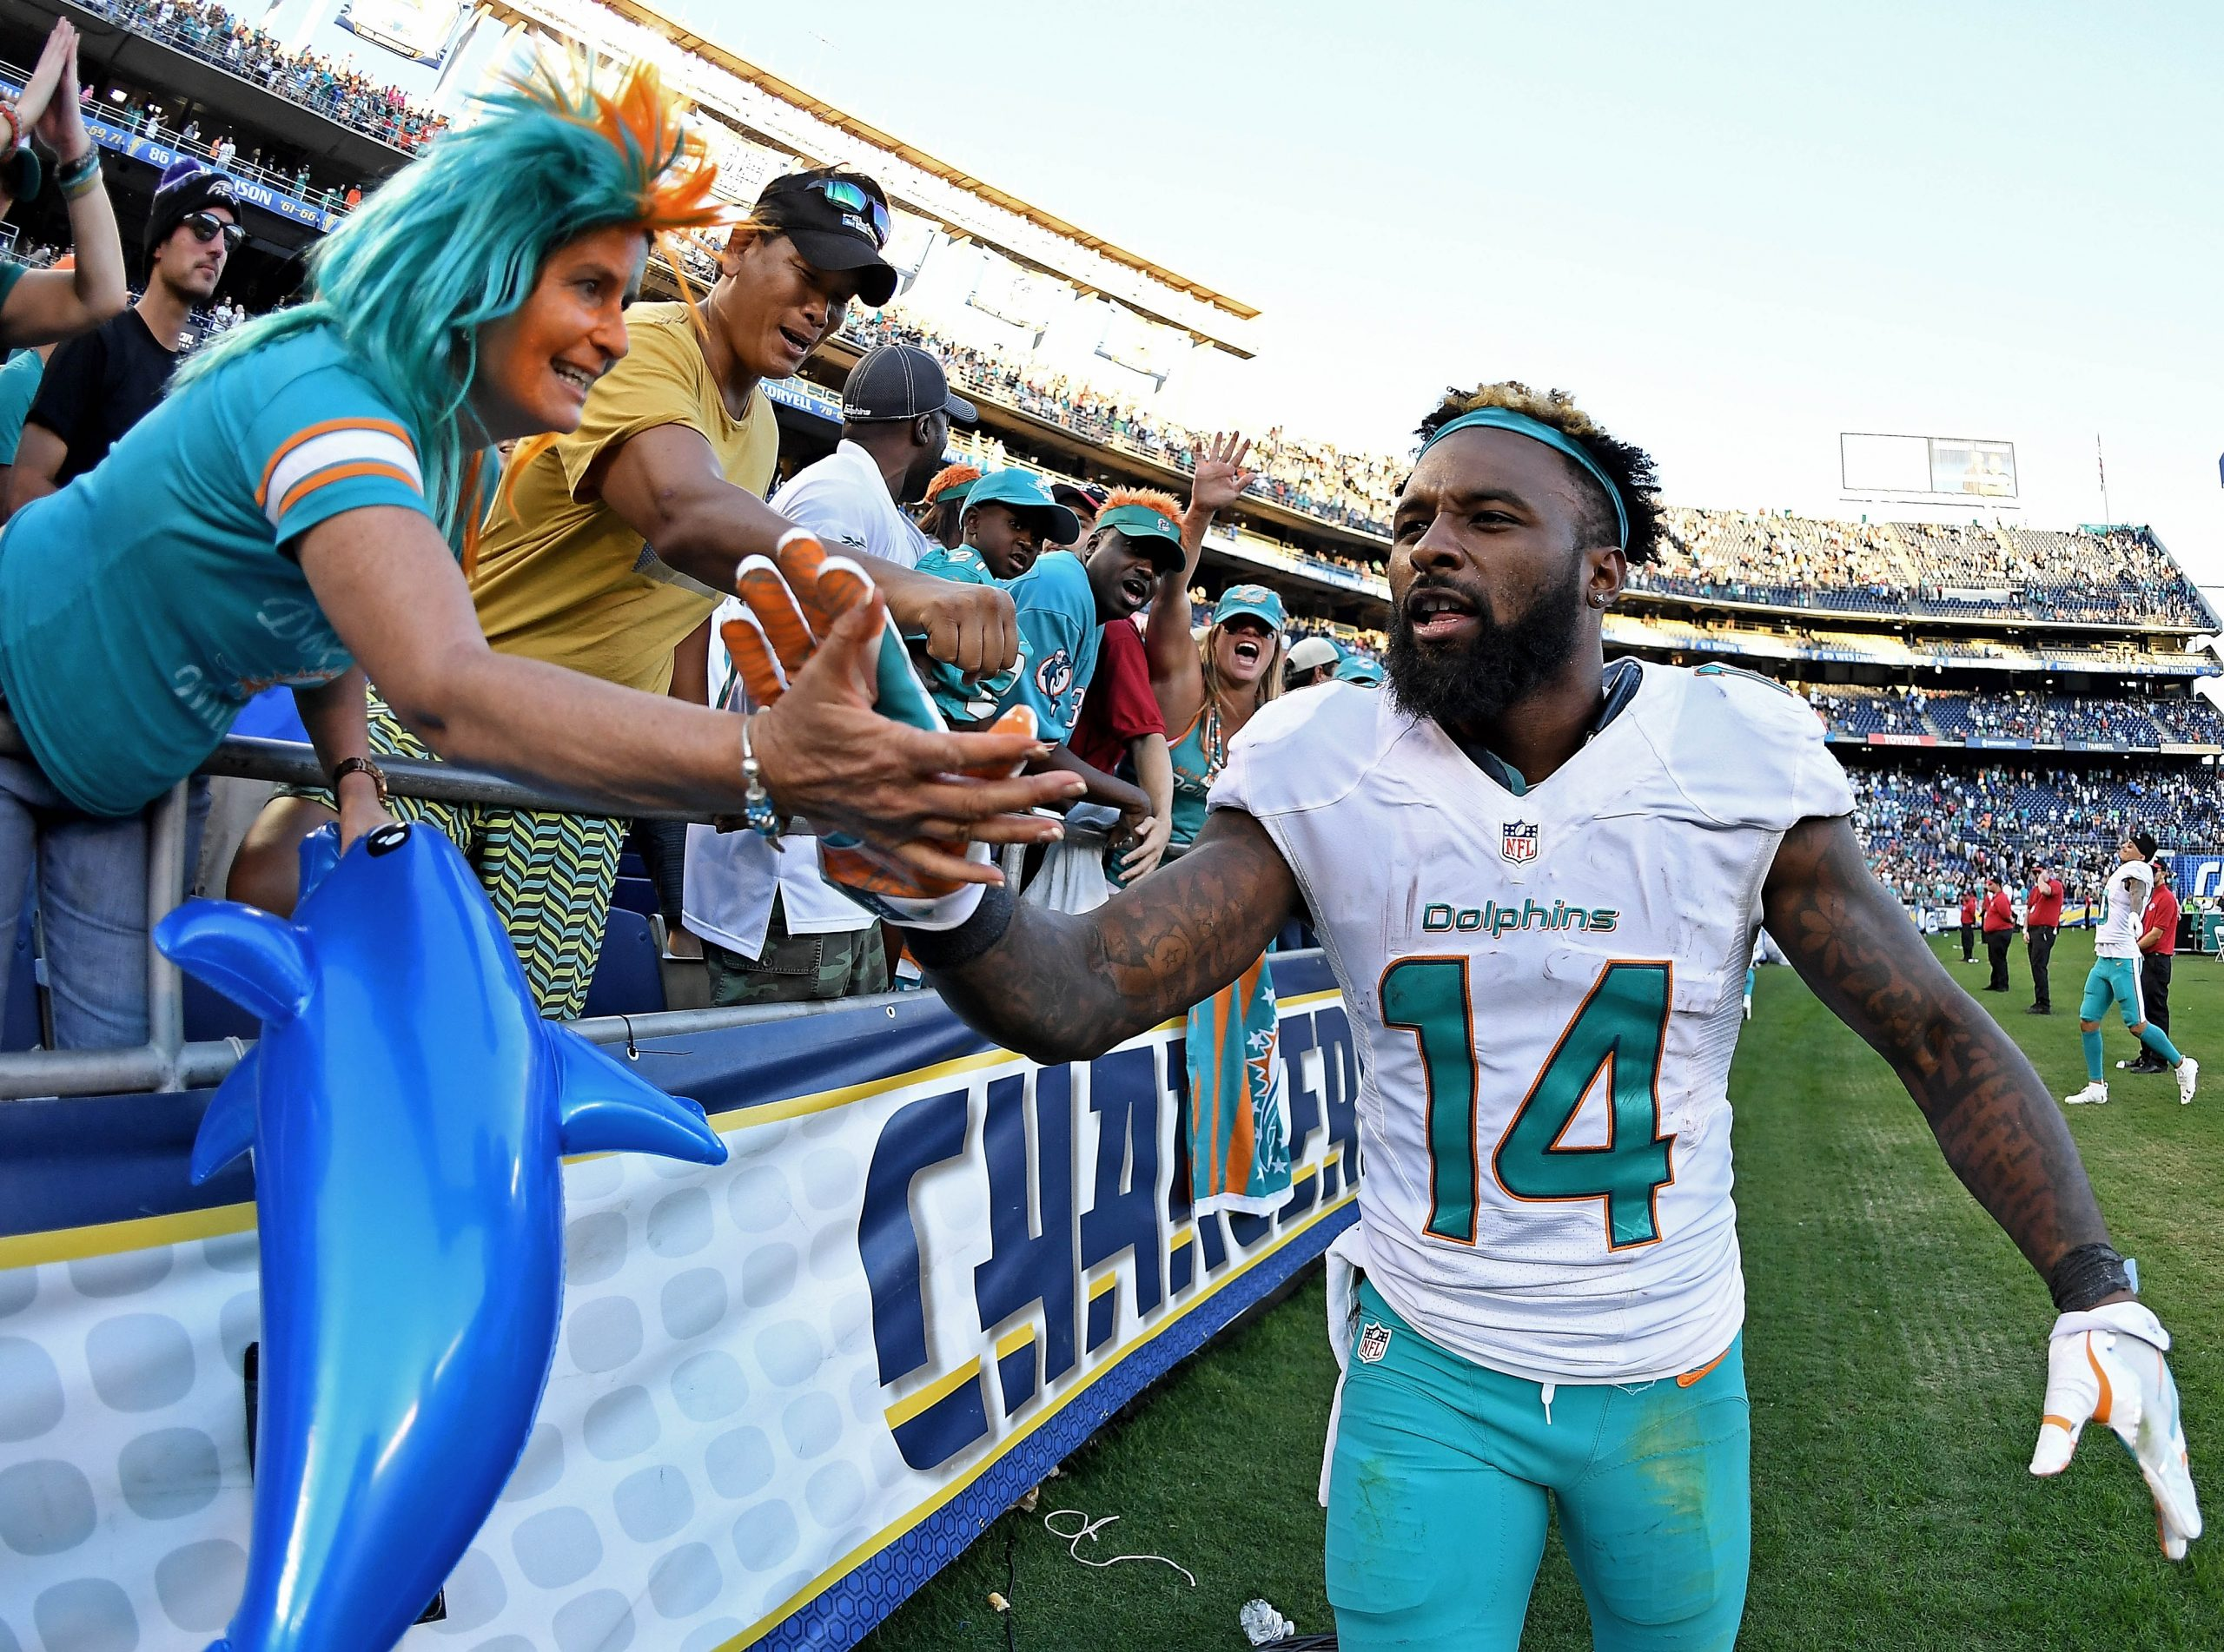 Five-Game Winning Streak Earns Miami Dolphins Respect From with regard to Miami Dolphins Super Bowl Victories